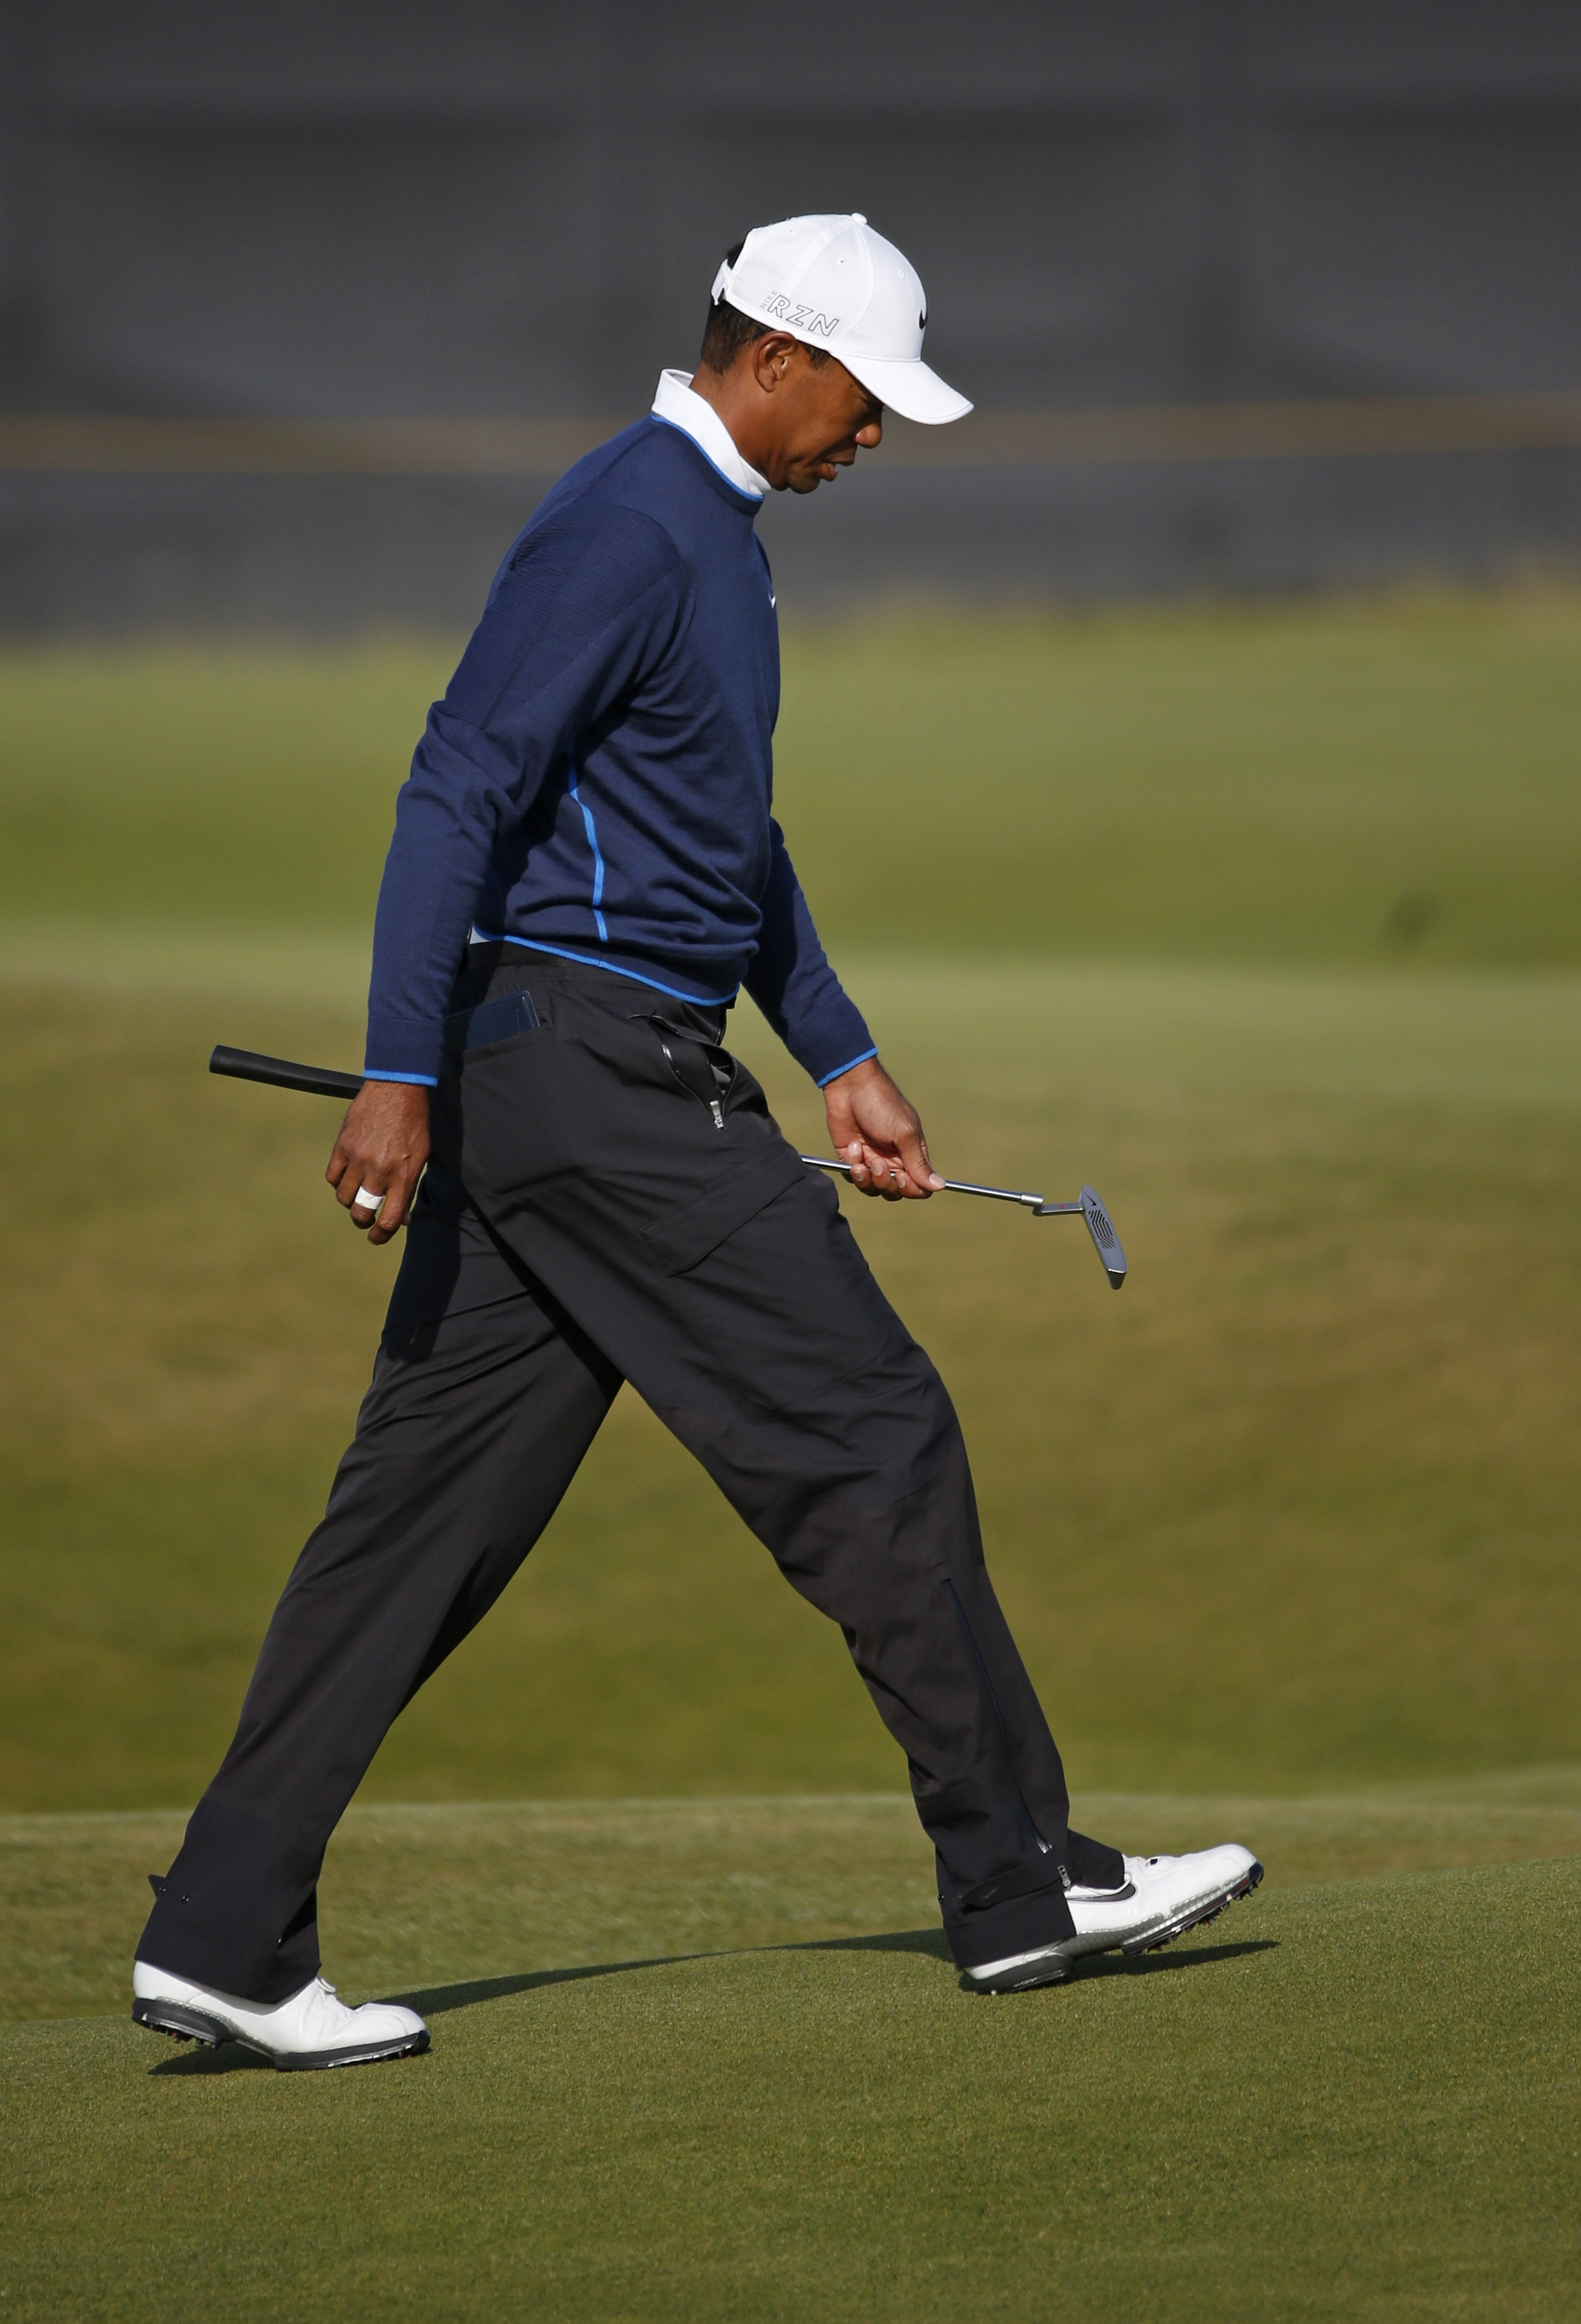 United States' Tiger Woods walks on the 14th hole during the second round of the British Open Golf Championship at the Old Course, St. Andrews, Scotland, Saturday, July 18, 2015. (AP Photo/Jon Super)